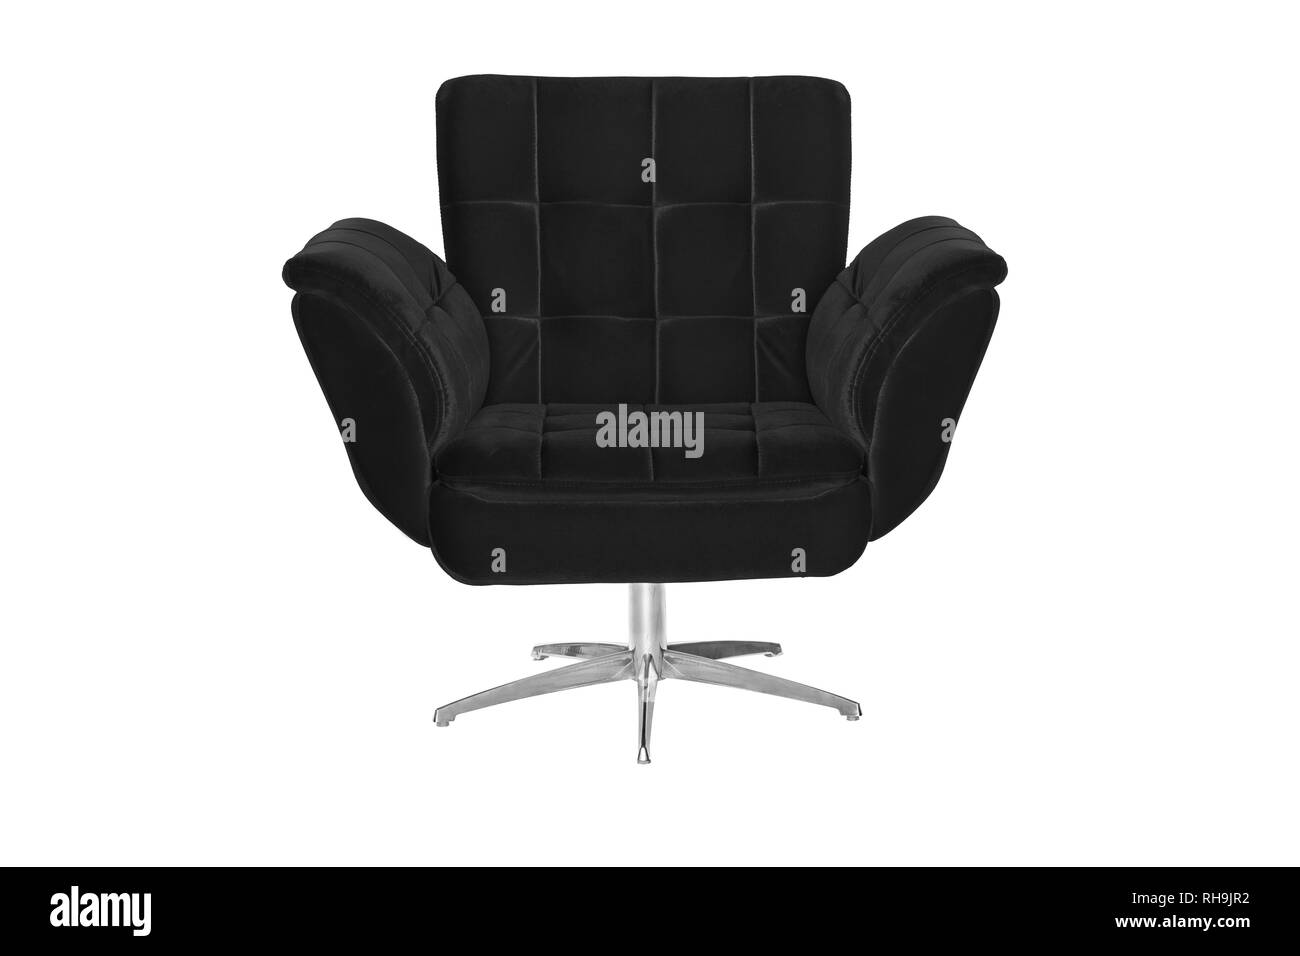 armchair. Modern designer chair on white background. Texture chair. - Stock Image